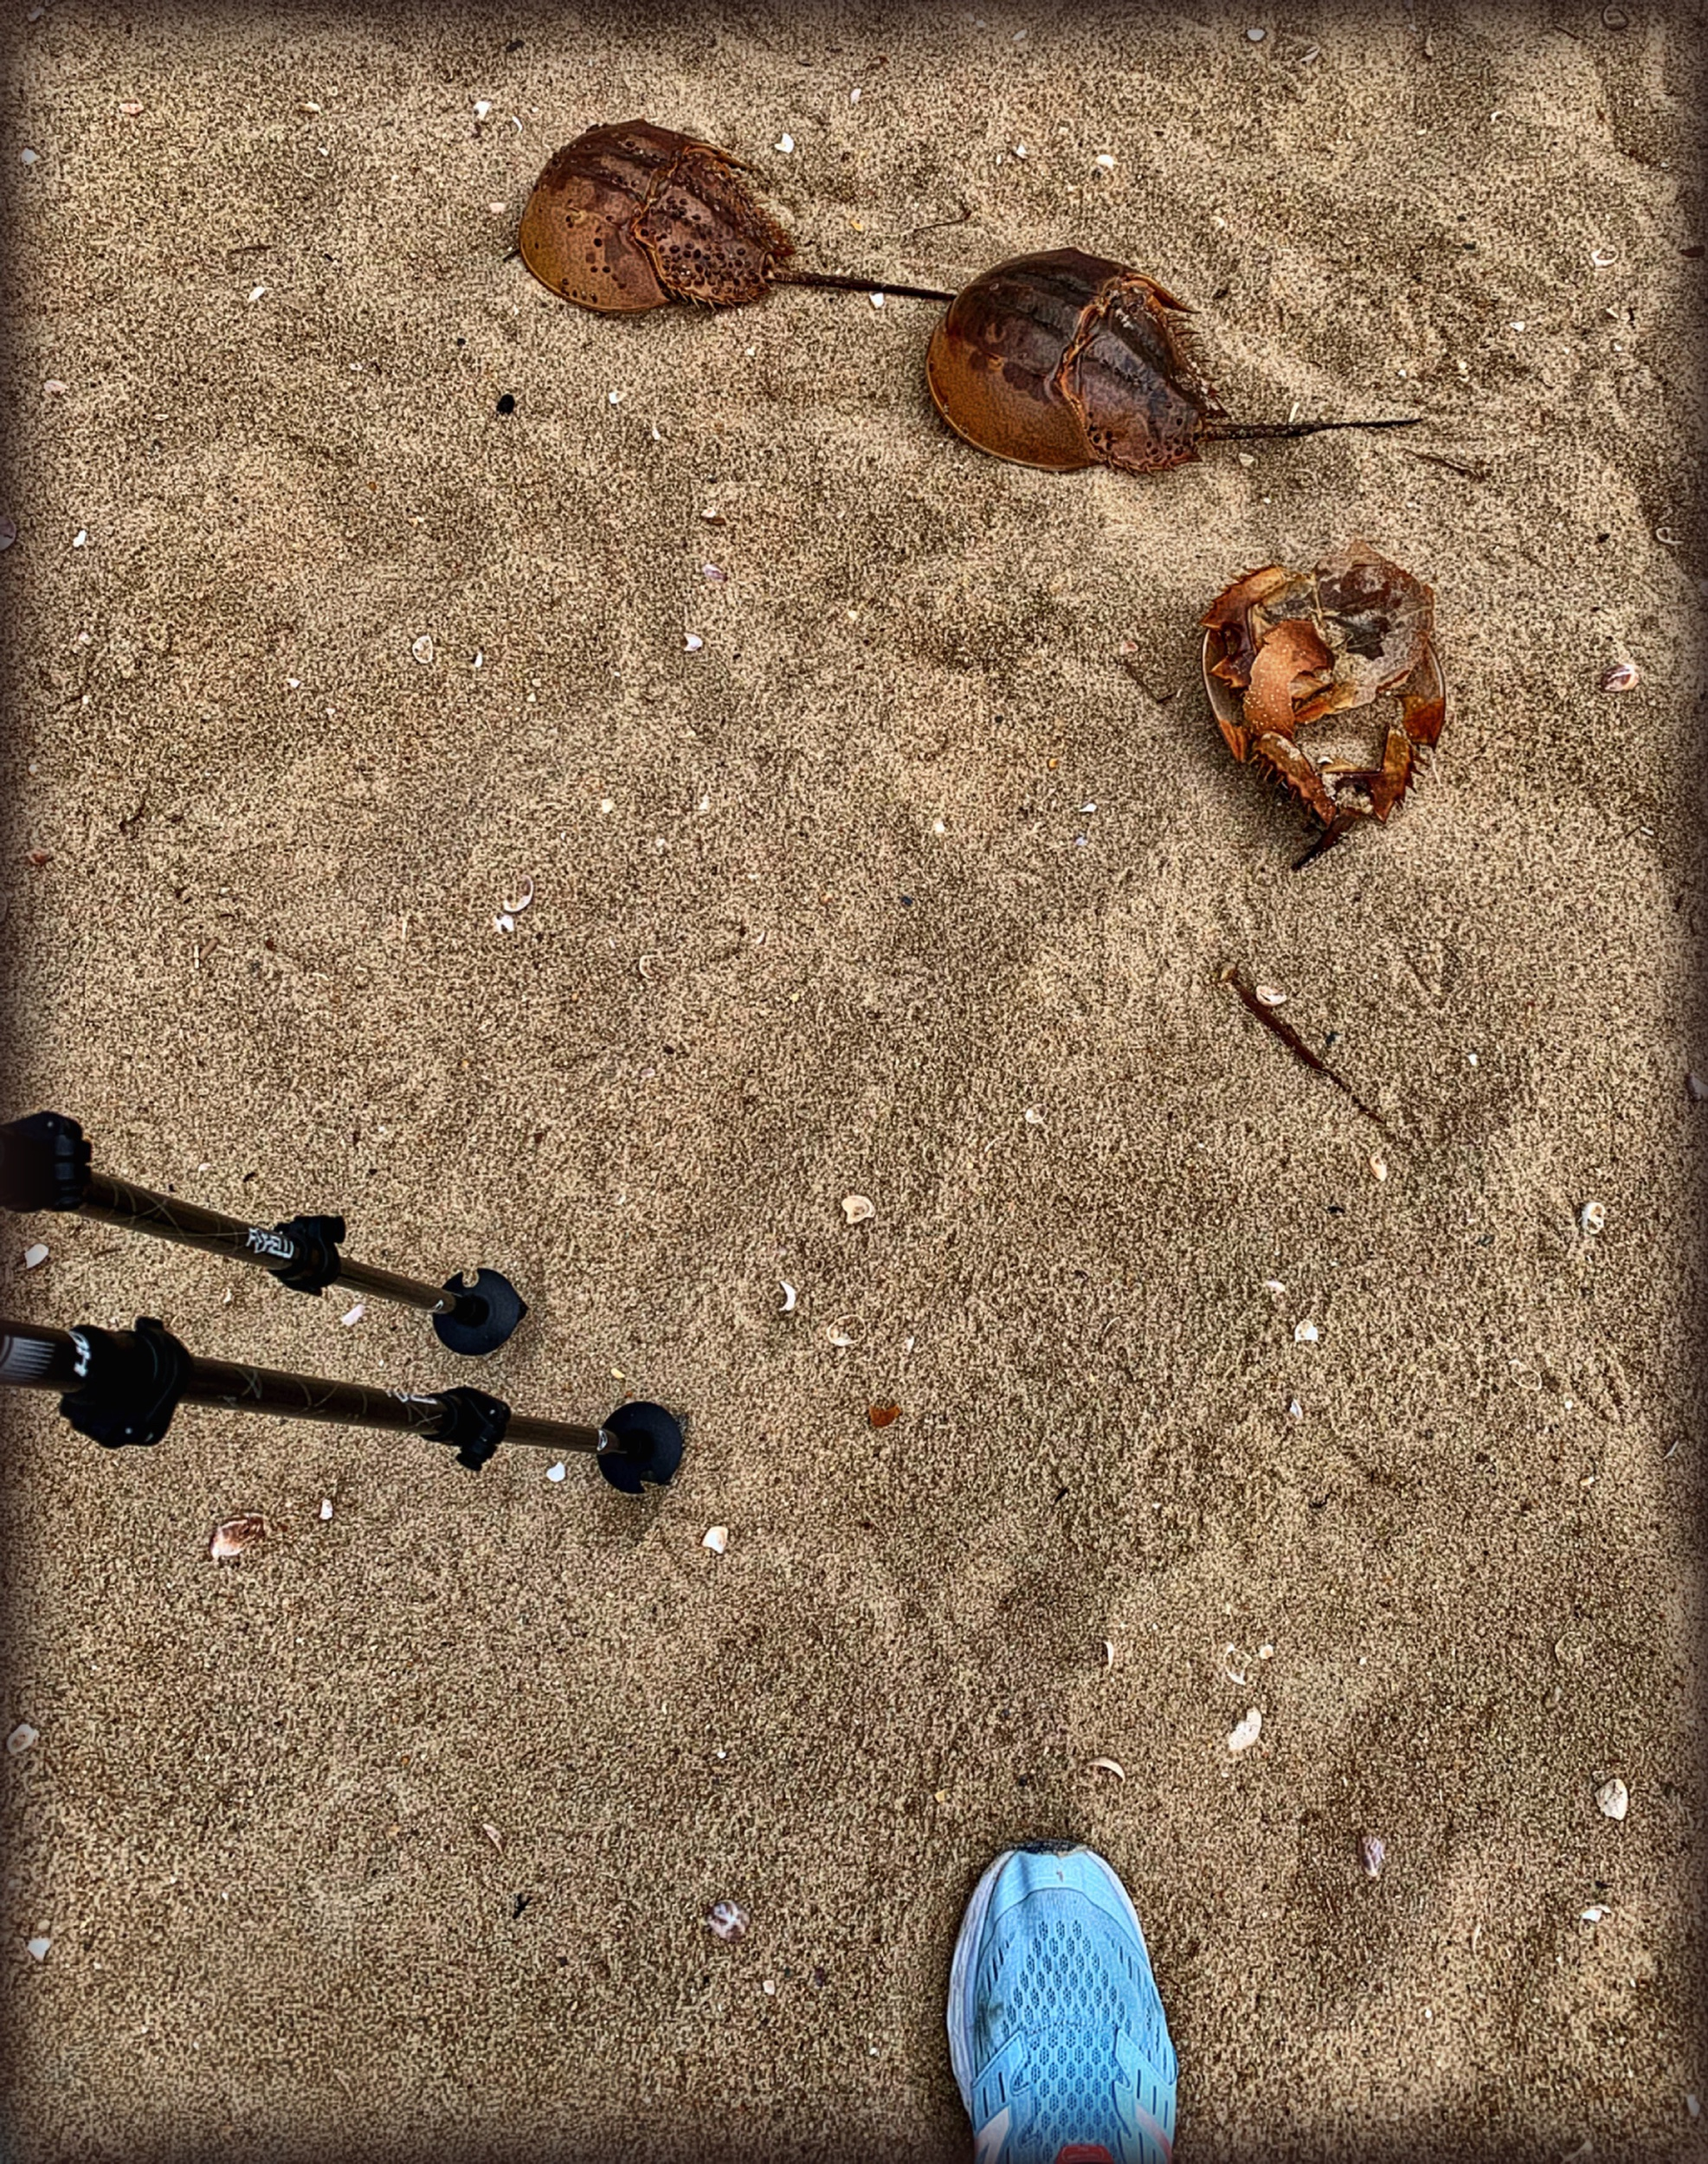 September 4, 2019 - Enjoyed my 1st beach walk this morning (used walking poles rather than cane)!